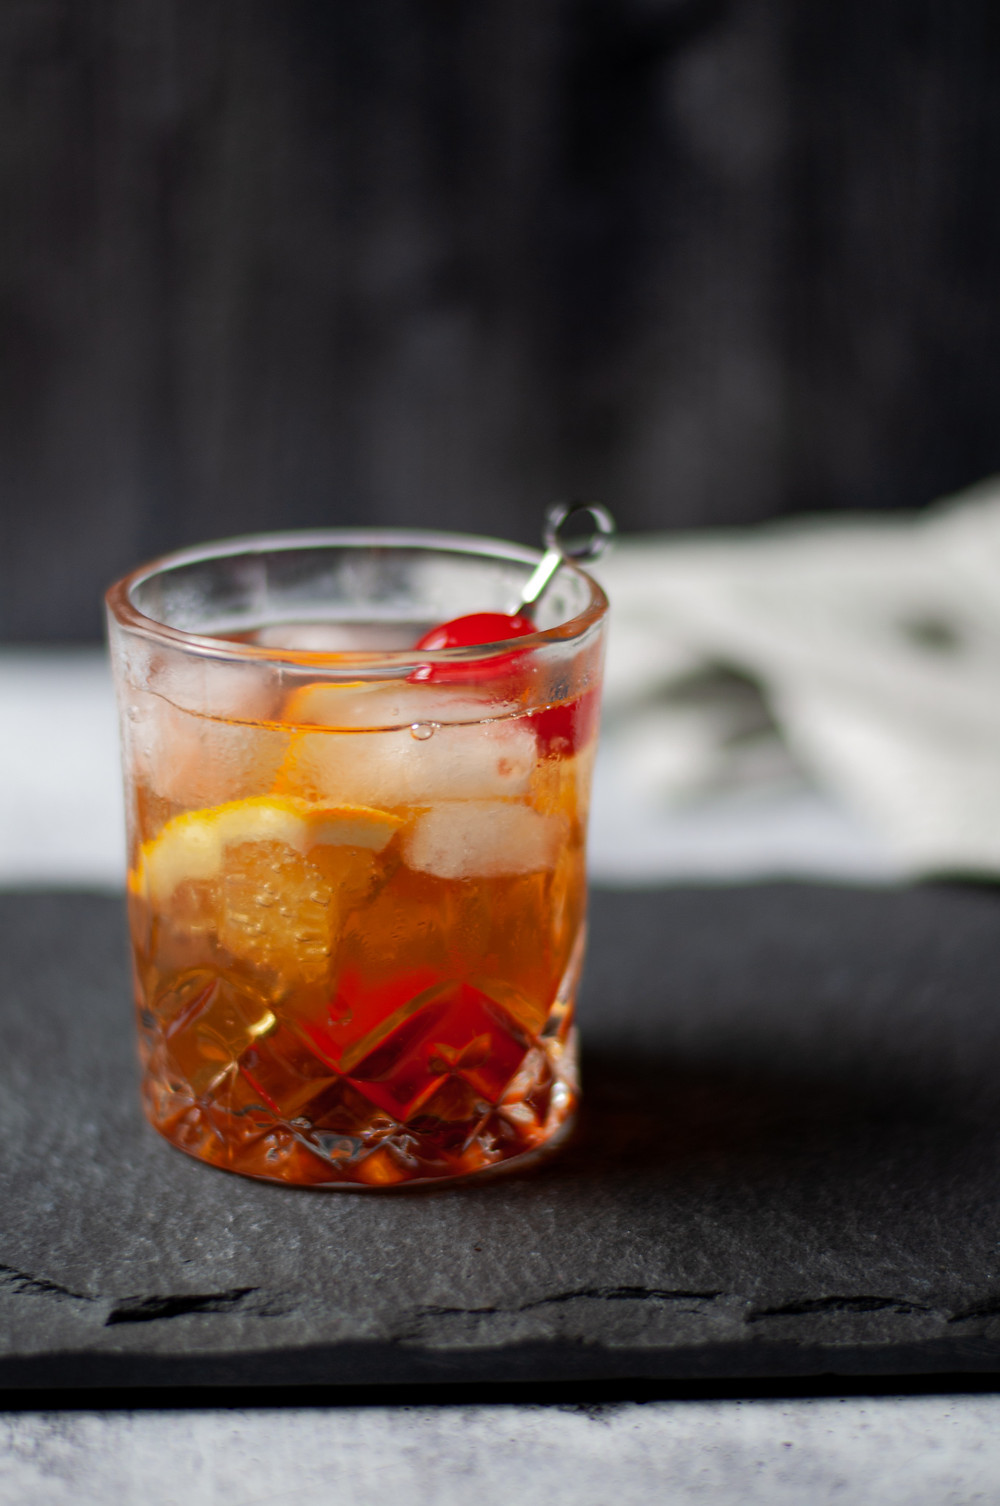 A single rocks glass of a brandy old fashioned sweet garnished with an orange wedge and maraschino cherry